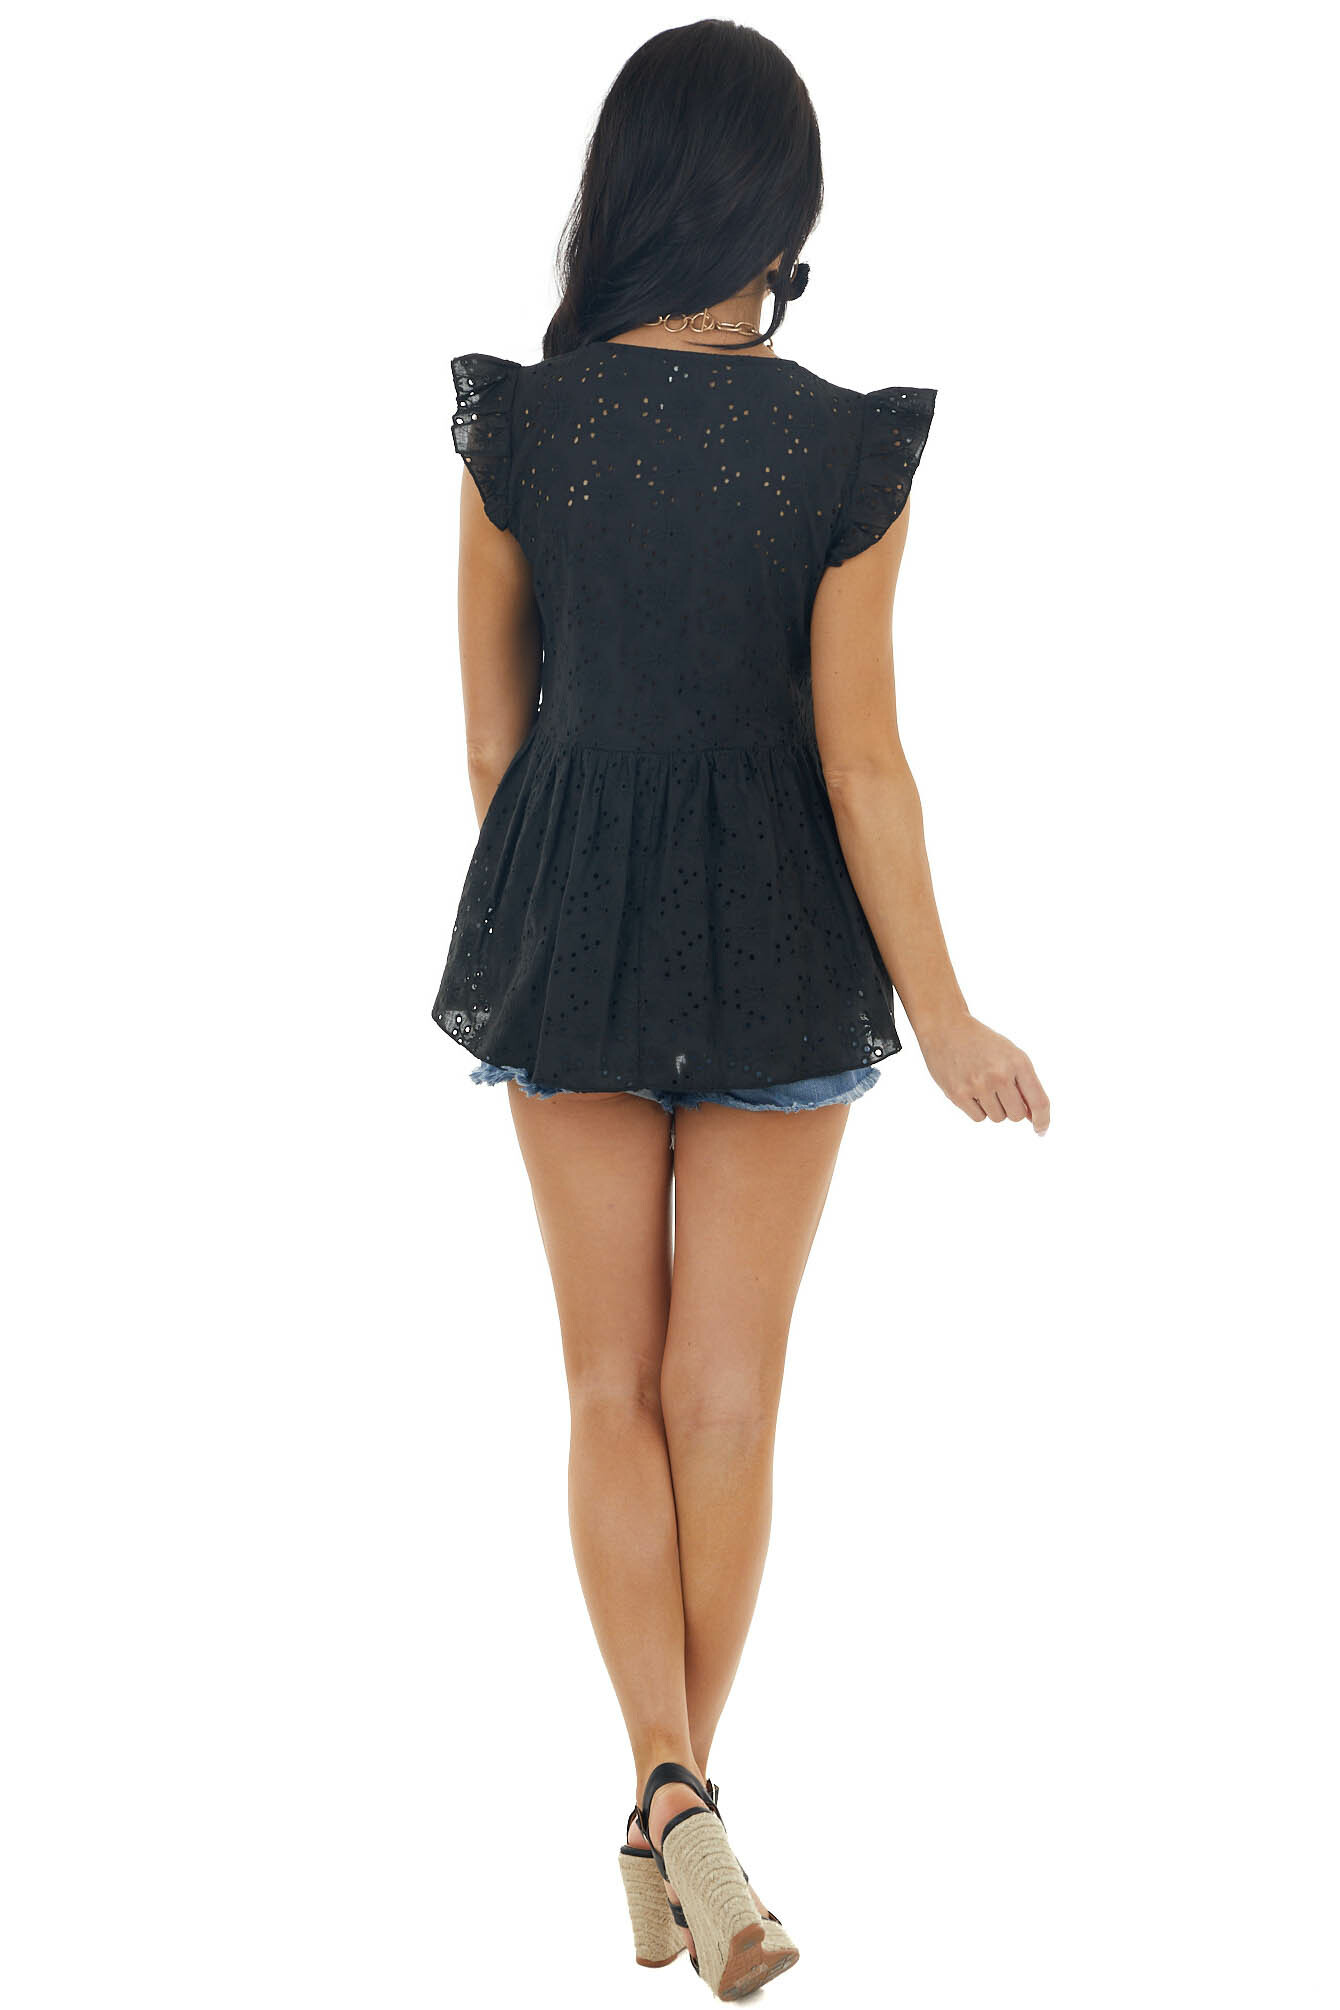 Black Eyelet Lace Babydoll Blouse with Flutter Cap Sleeves